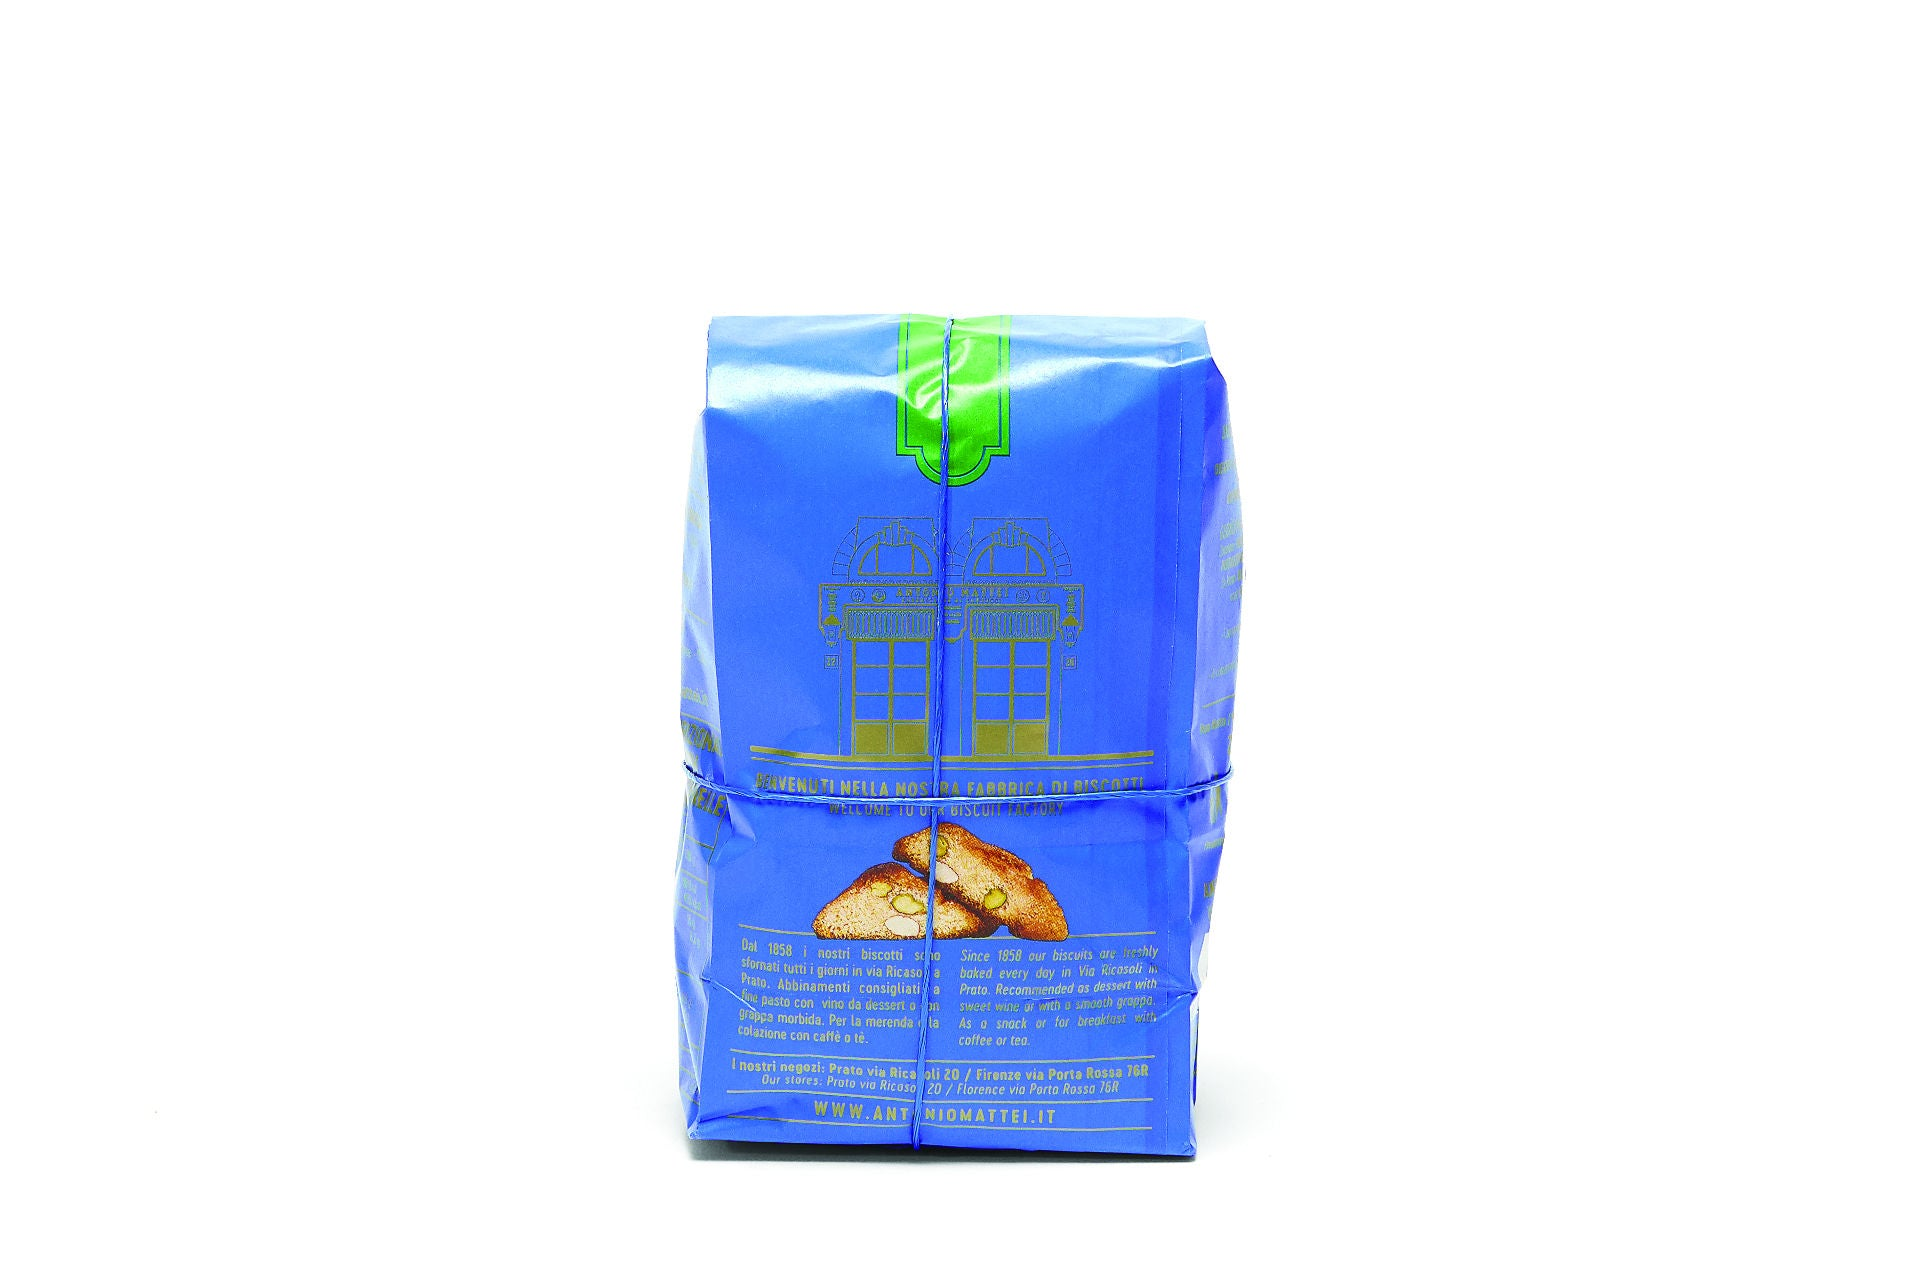 Antonio Mattei Pistachios and Almonds Cantucci Made in Prato, Tuscany - Shop at the Red Beetle